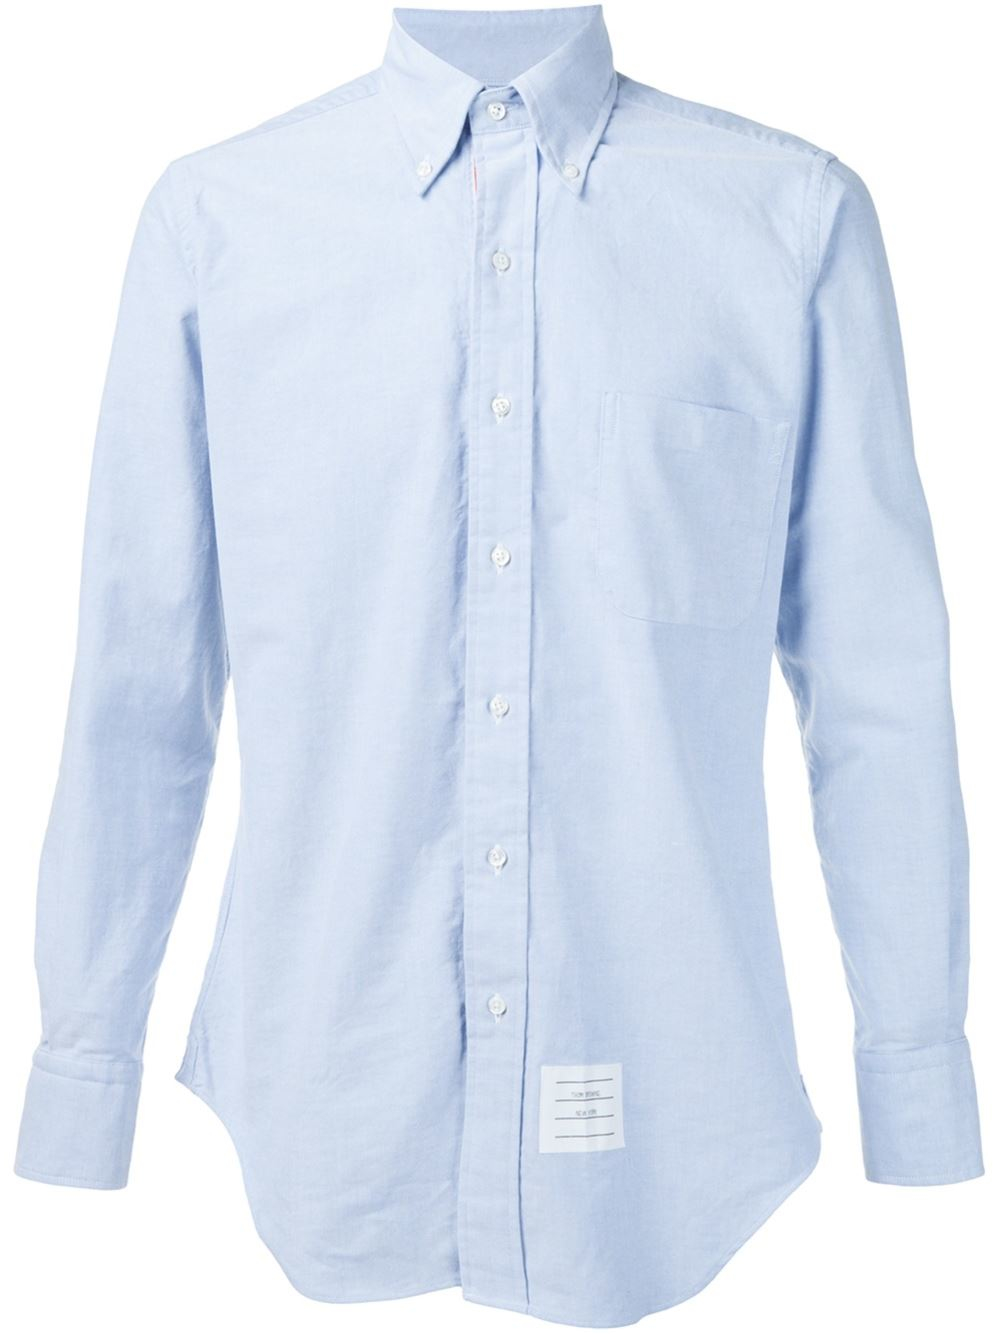 Thom browne button down shirt in blue for men lyst for Thom browne shirt sale